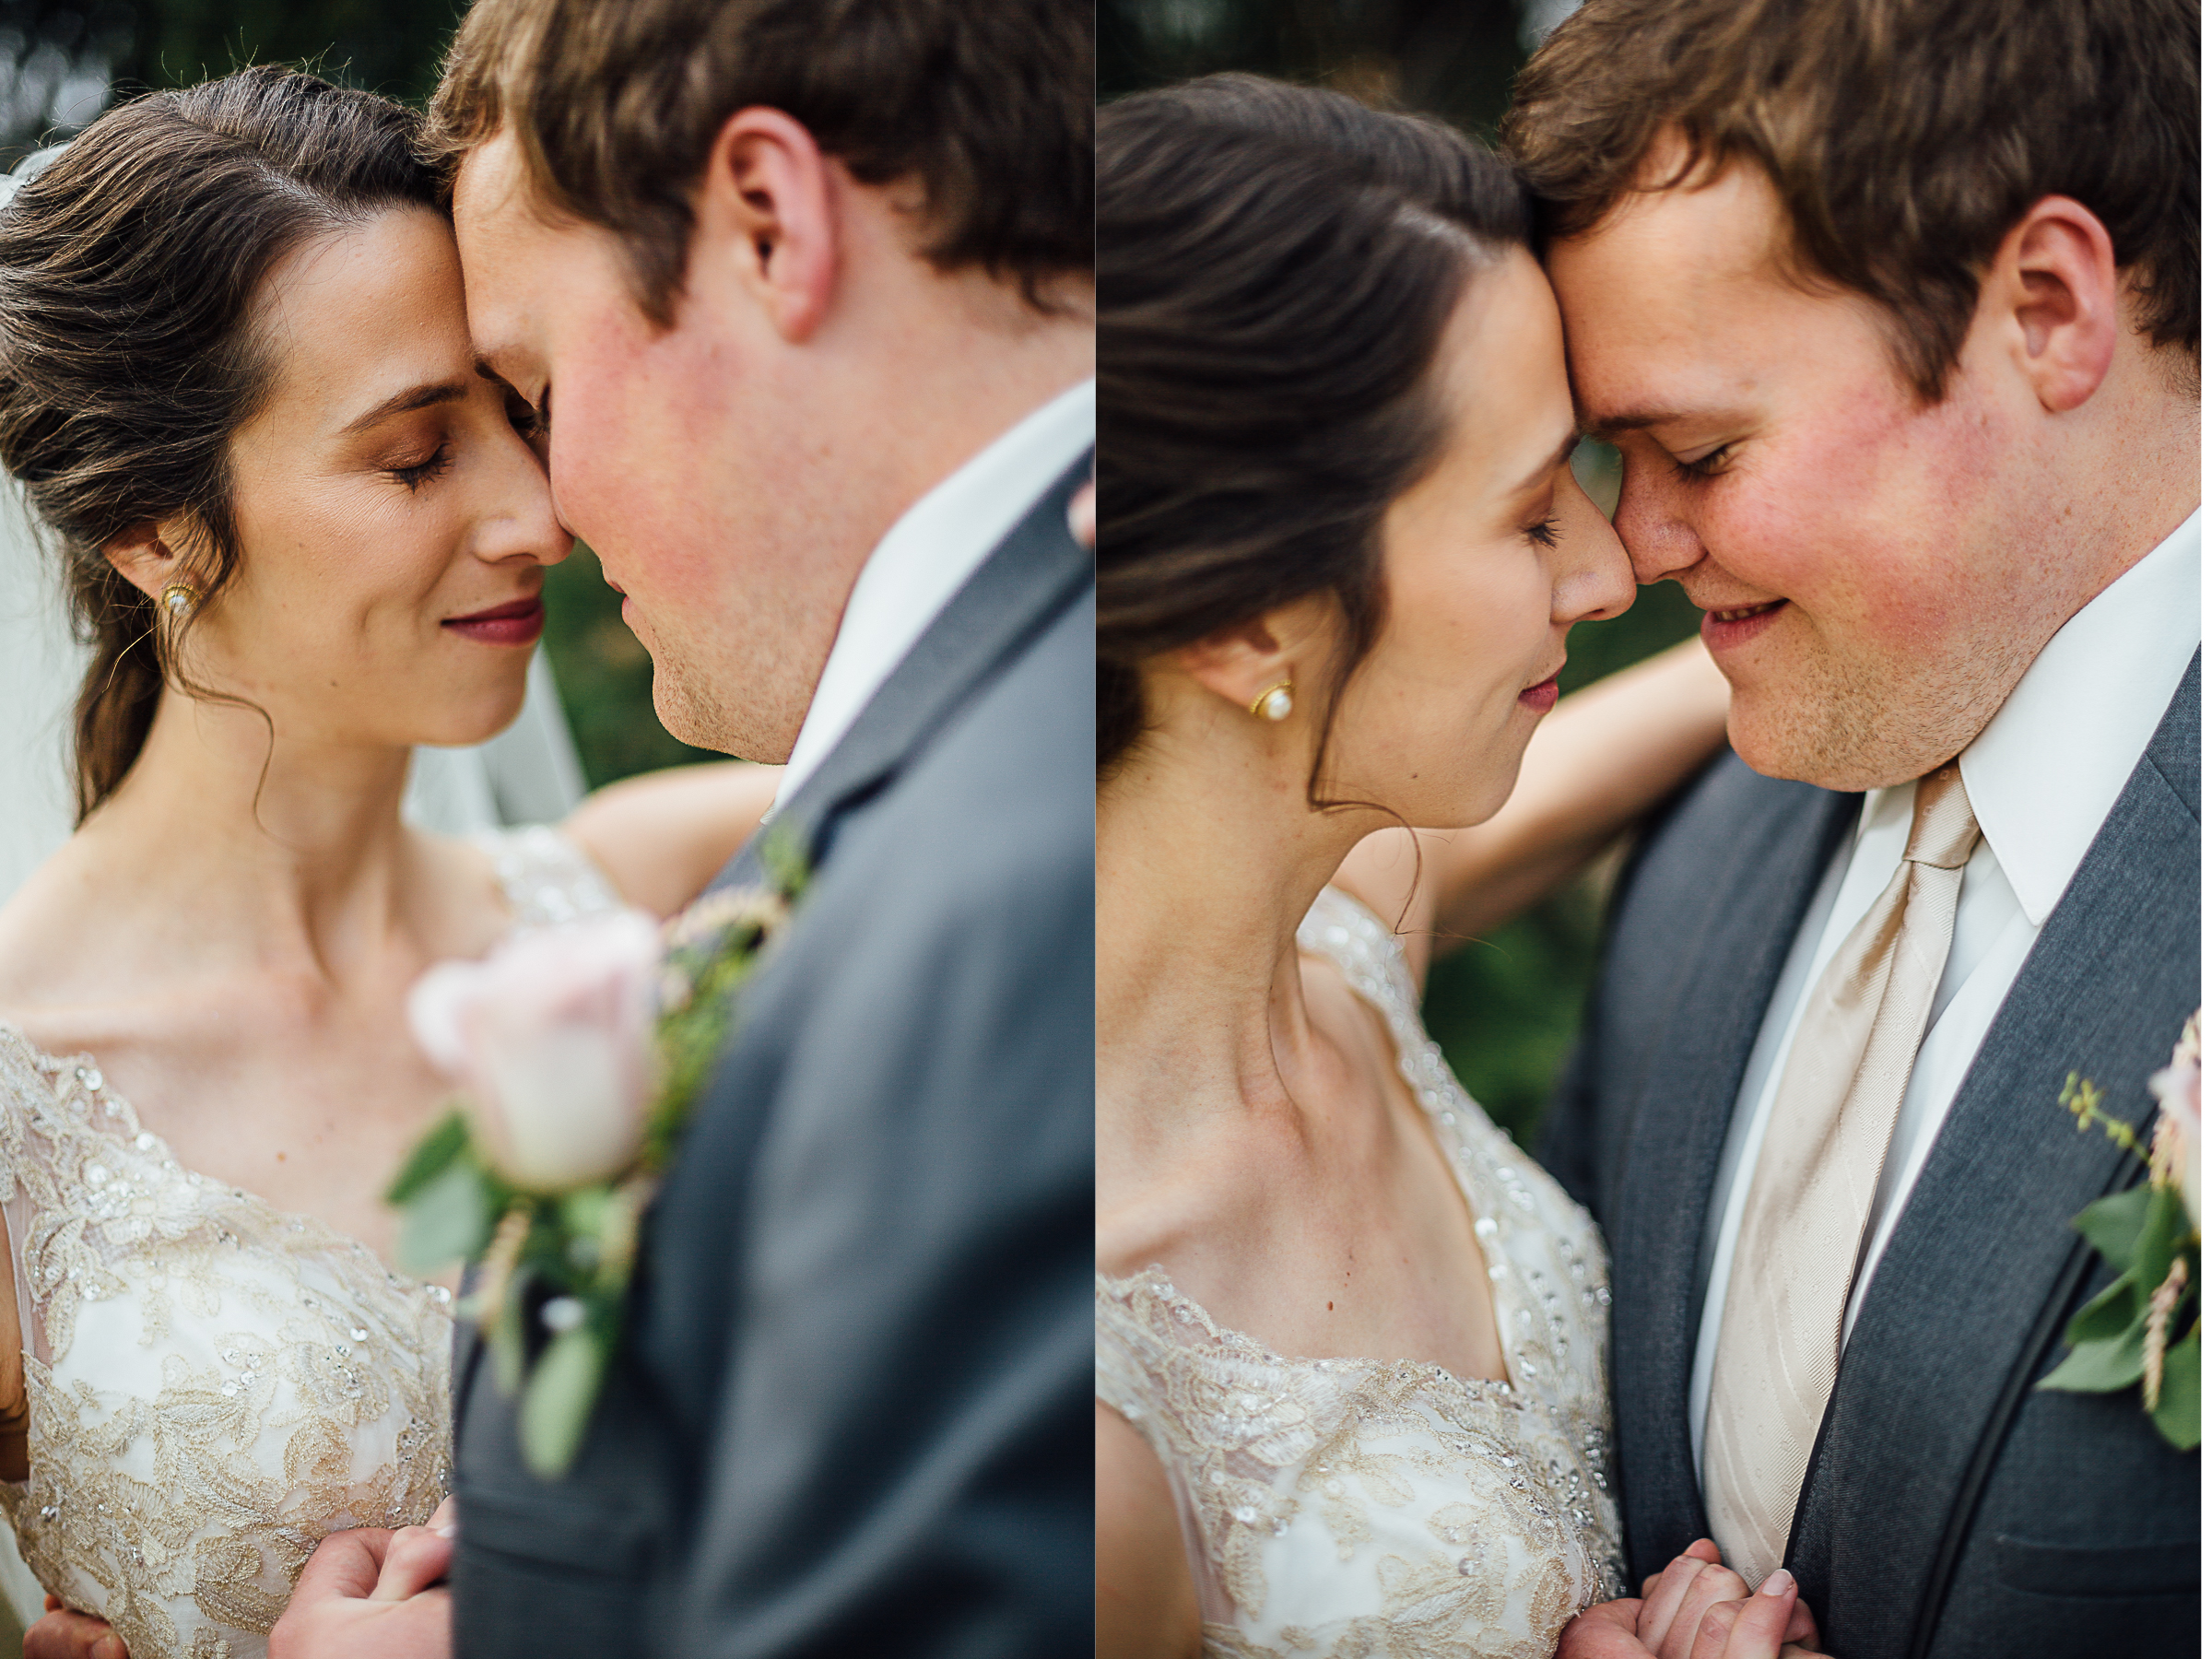 Intimate moment between bride and groom by Corrie Mick Photography.jpg